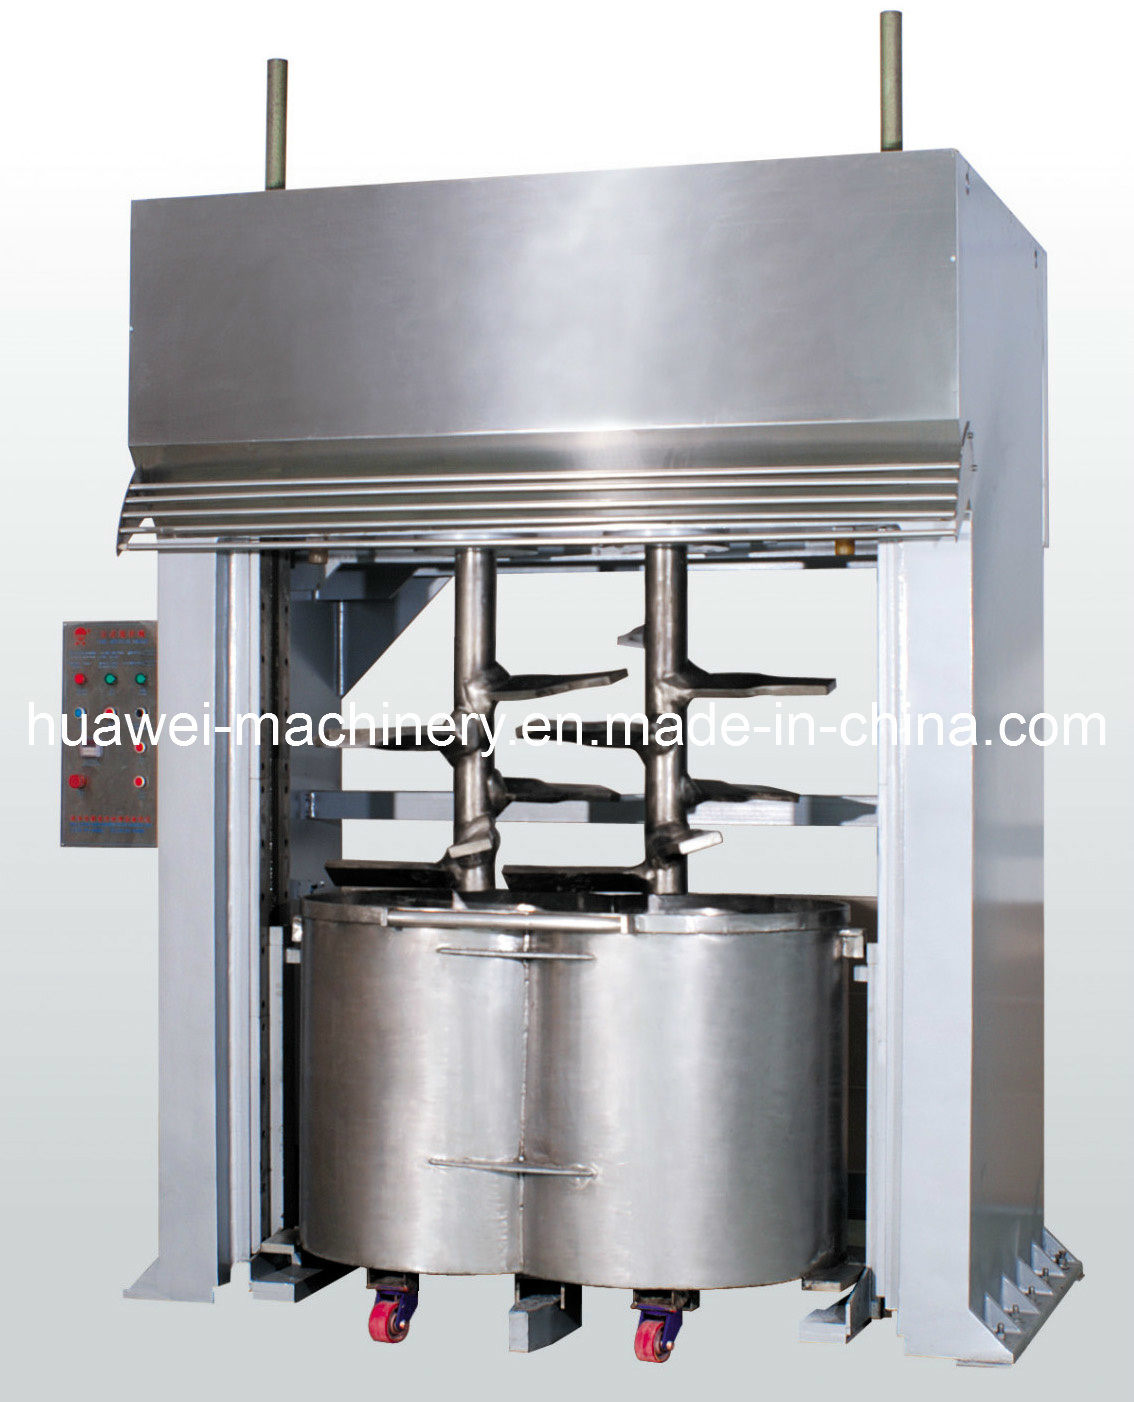 Vertical Dough Mixer, Biscuit Making Machine